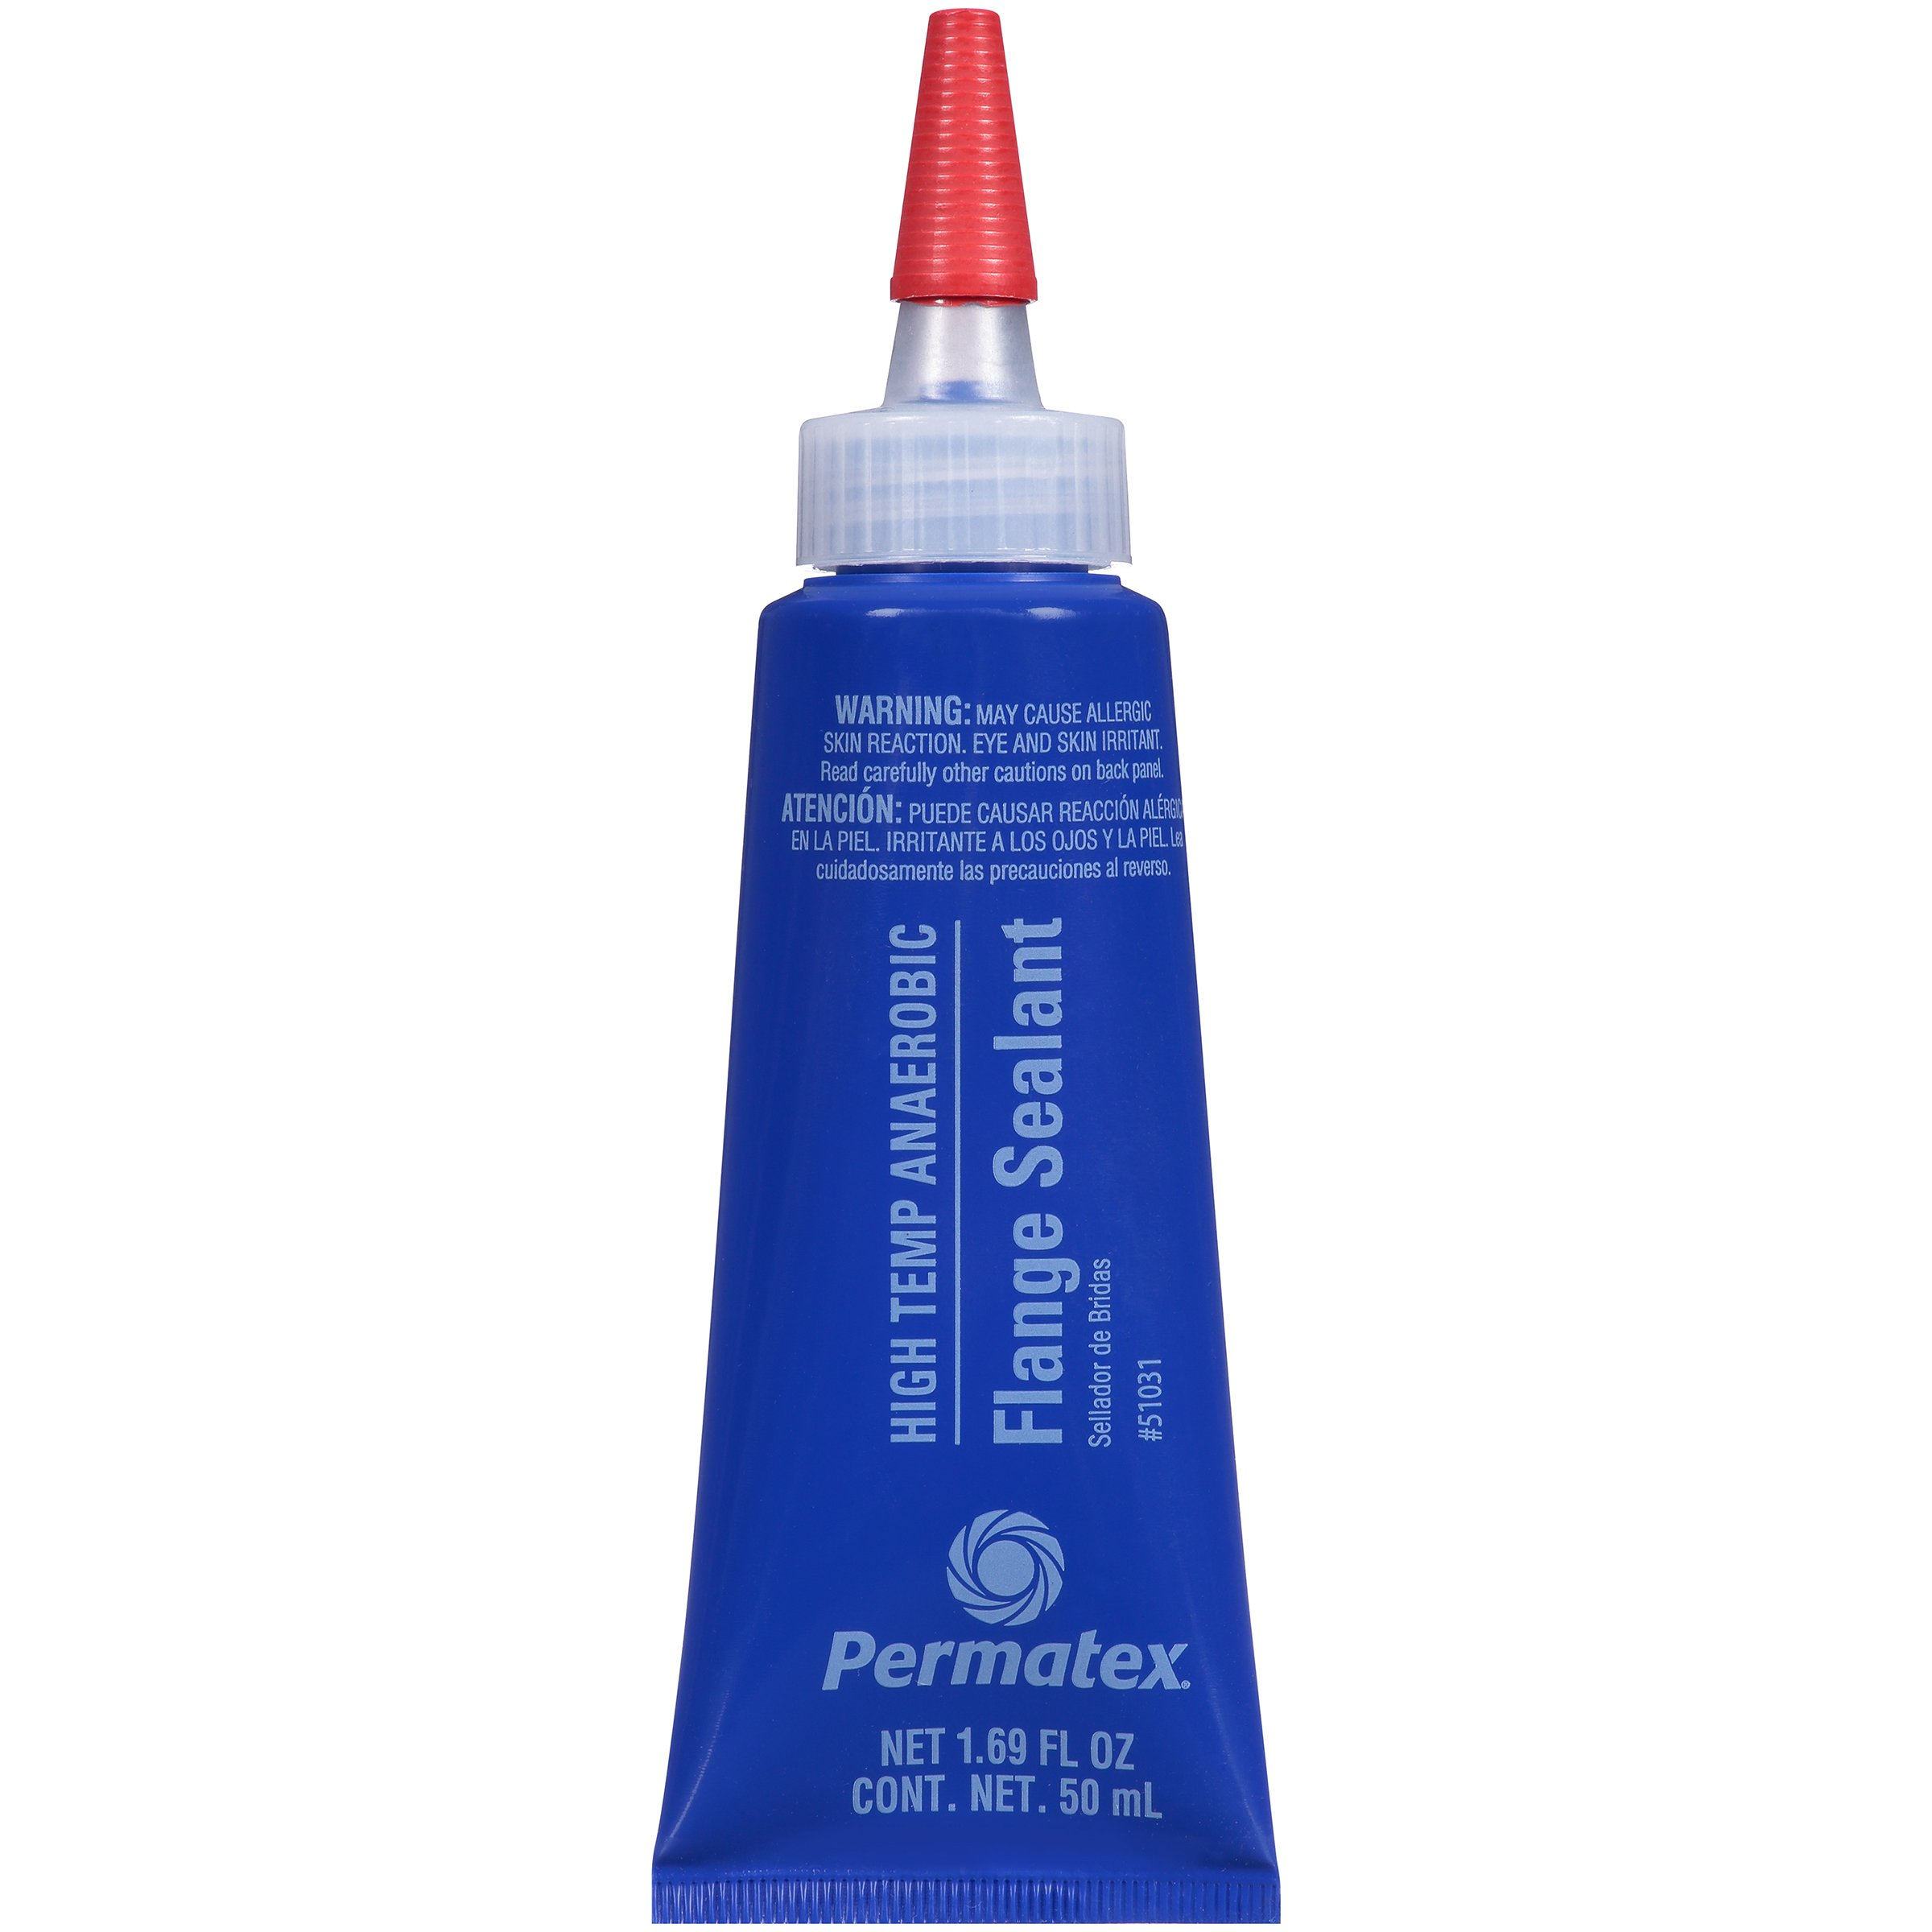 Permatex 51031 High Temperature Anaerobic Flange Sealant, 50 ml